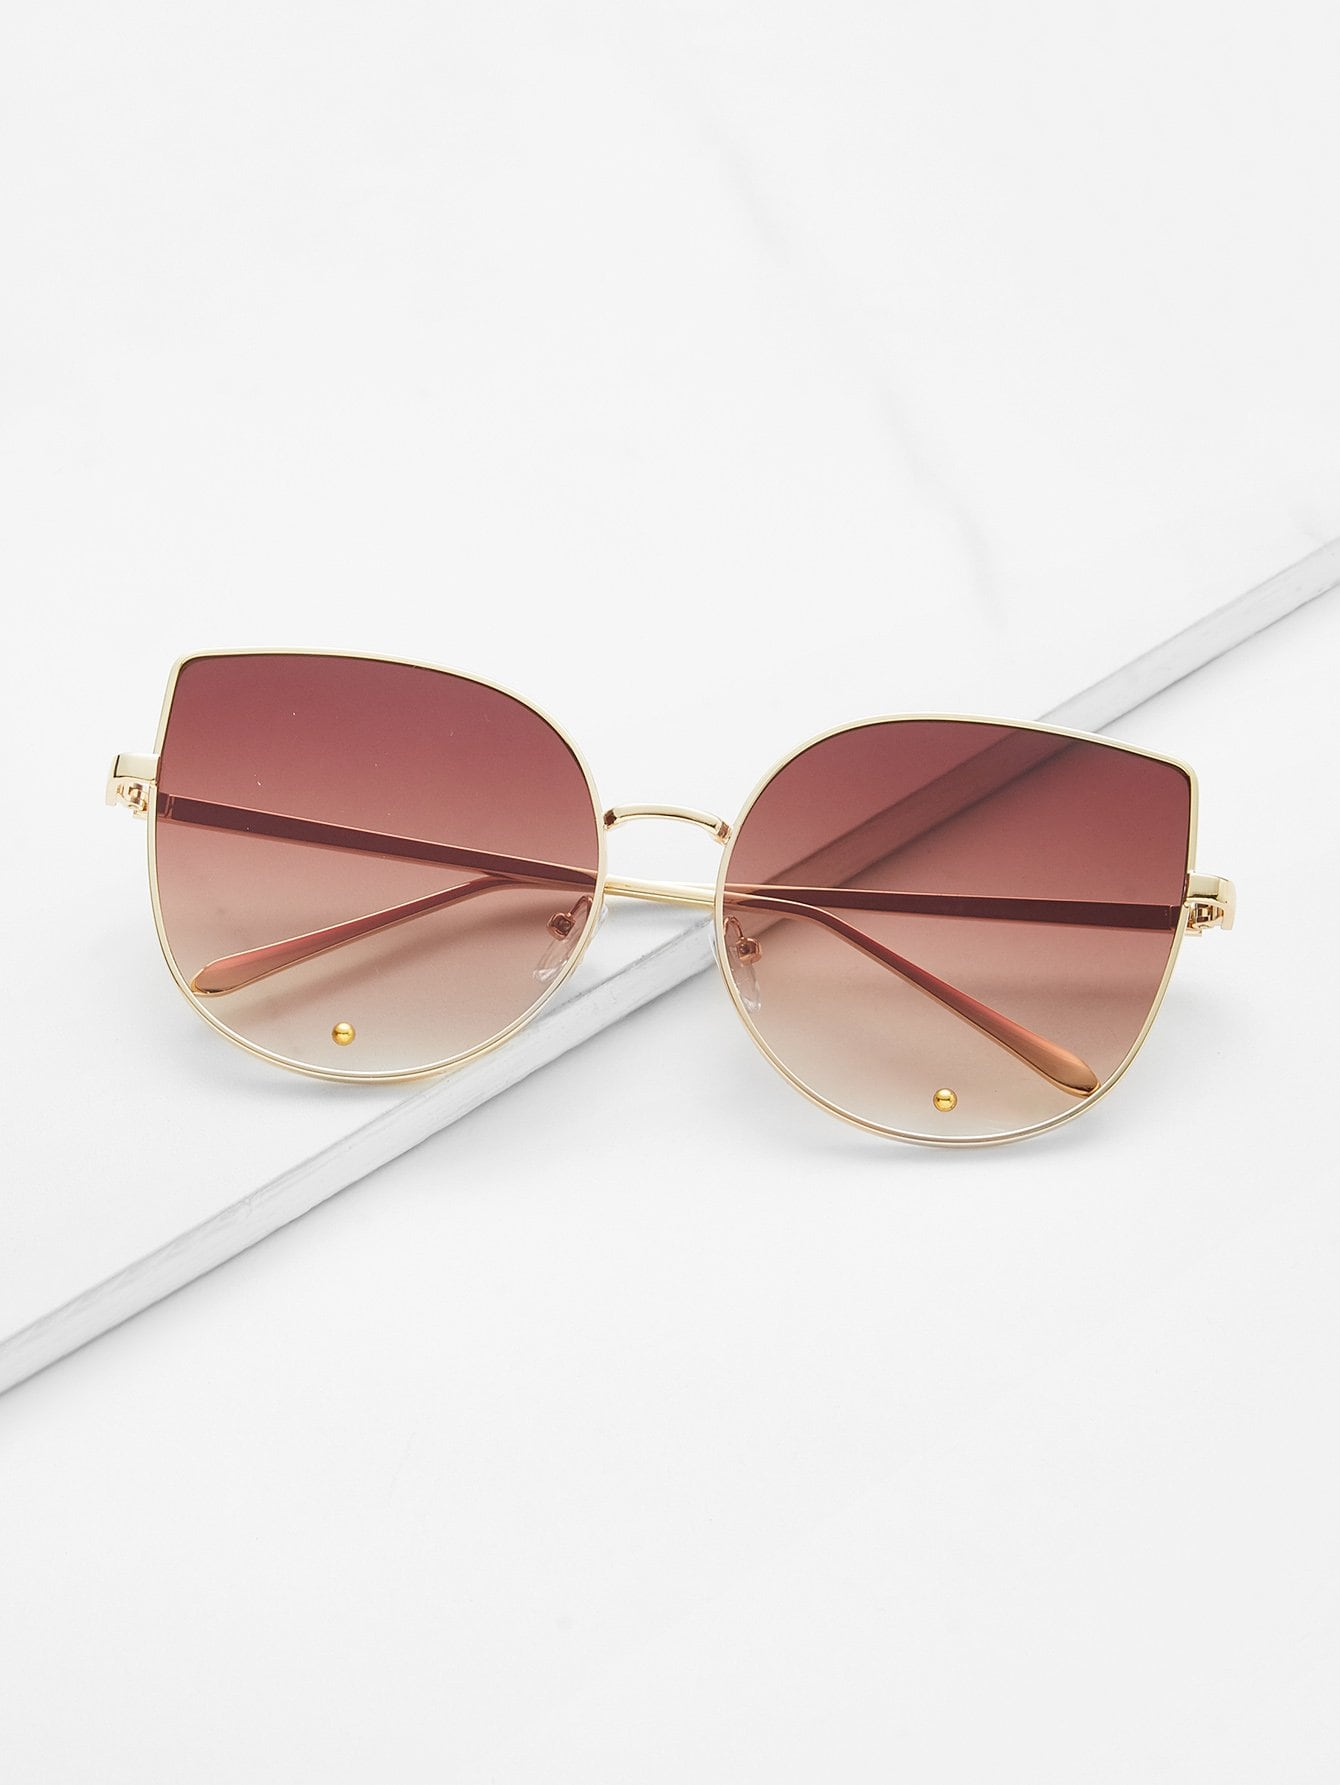 Gold Frame Brown Cat Eye Stylish Sunglasses stylish cat ears round sunglasses